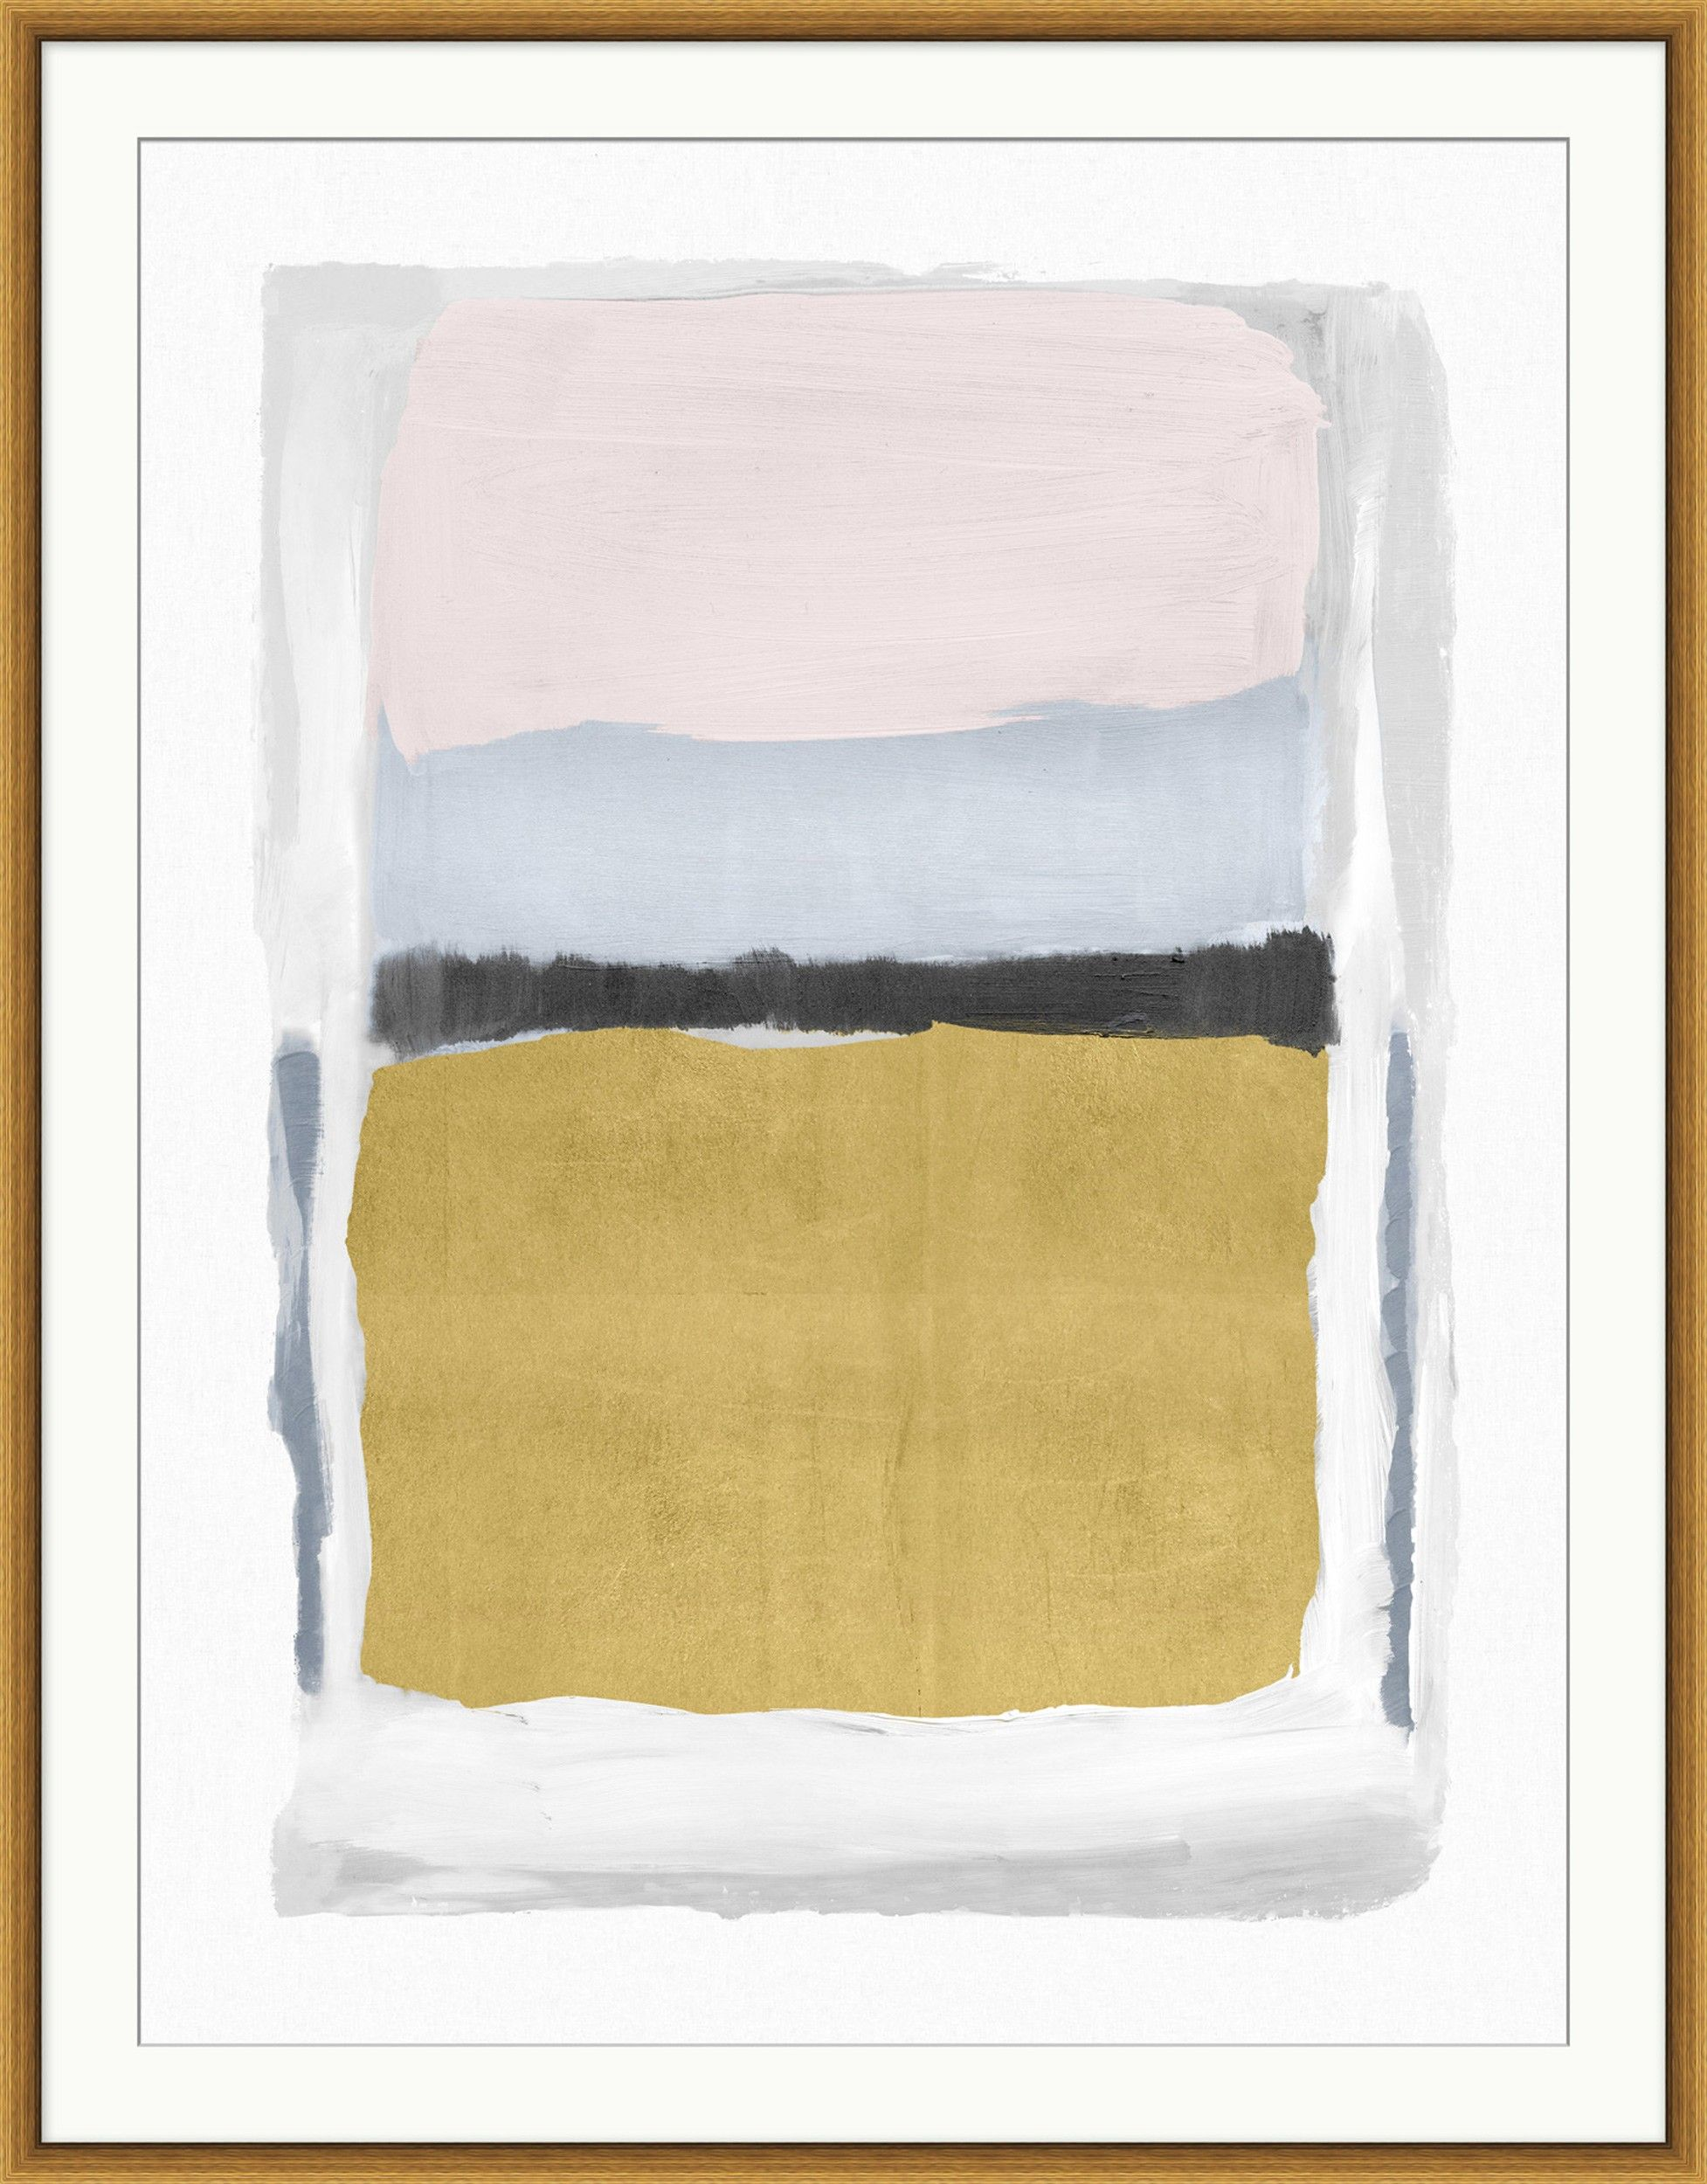 8 Pink and Gold 3 - Abstract - Our Product | RL CS | Pinterest ...